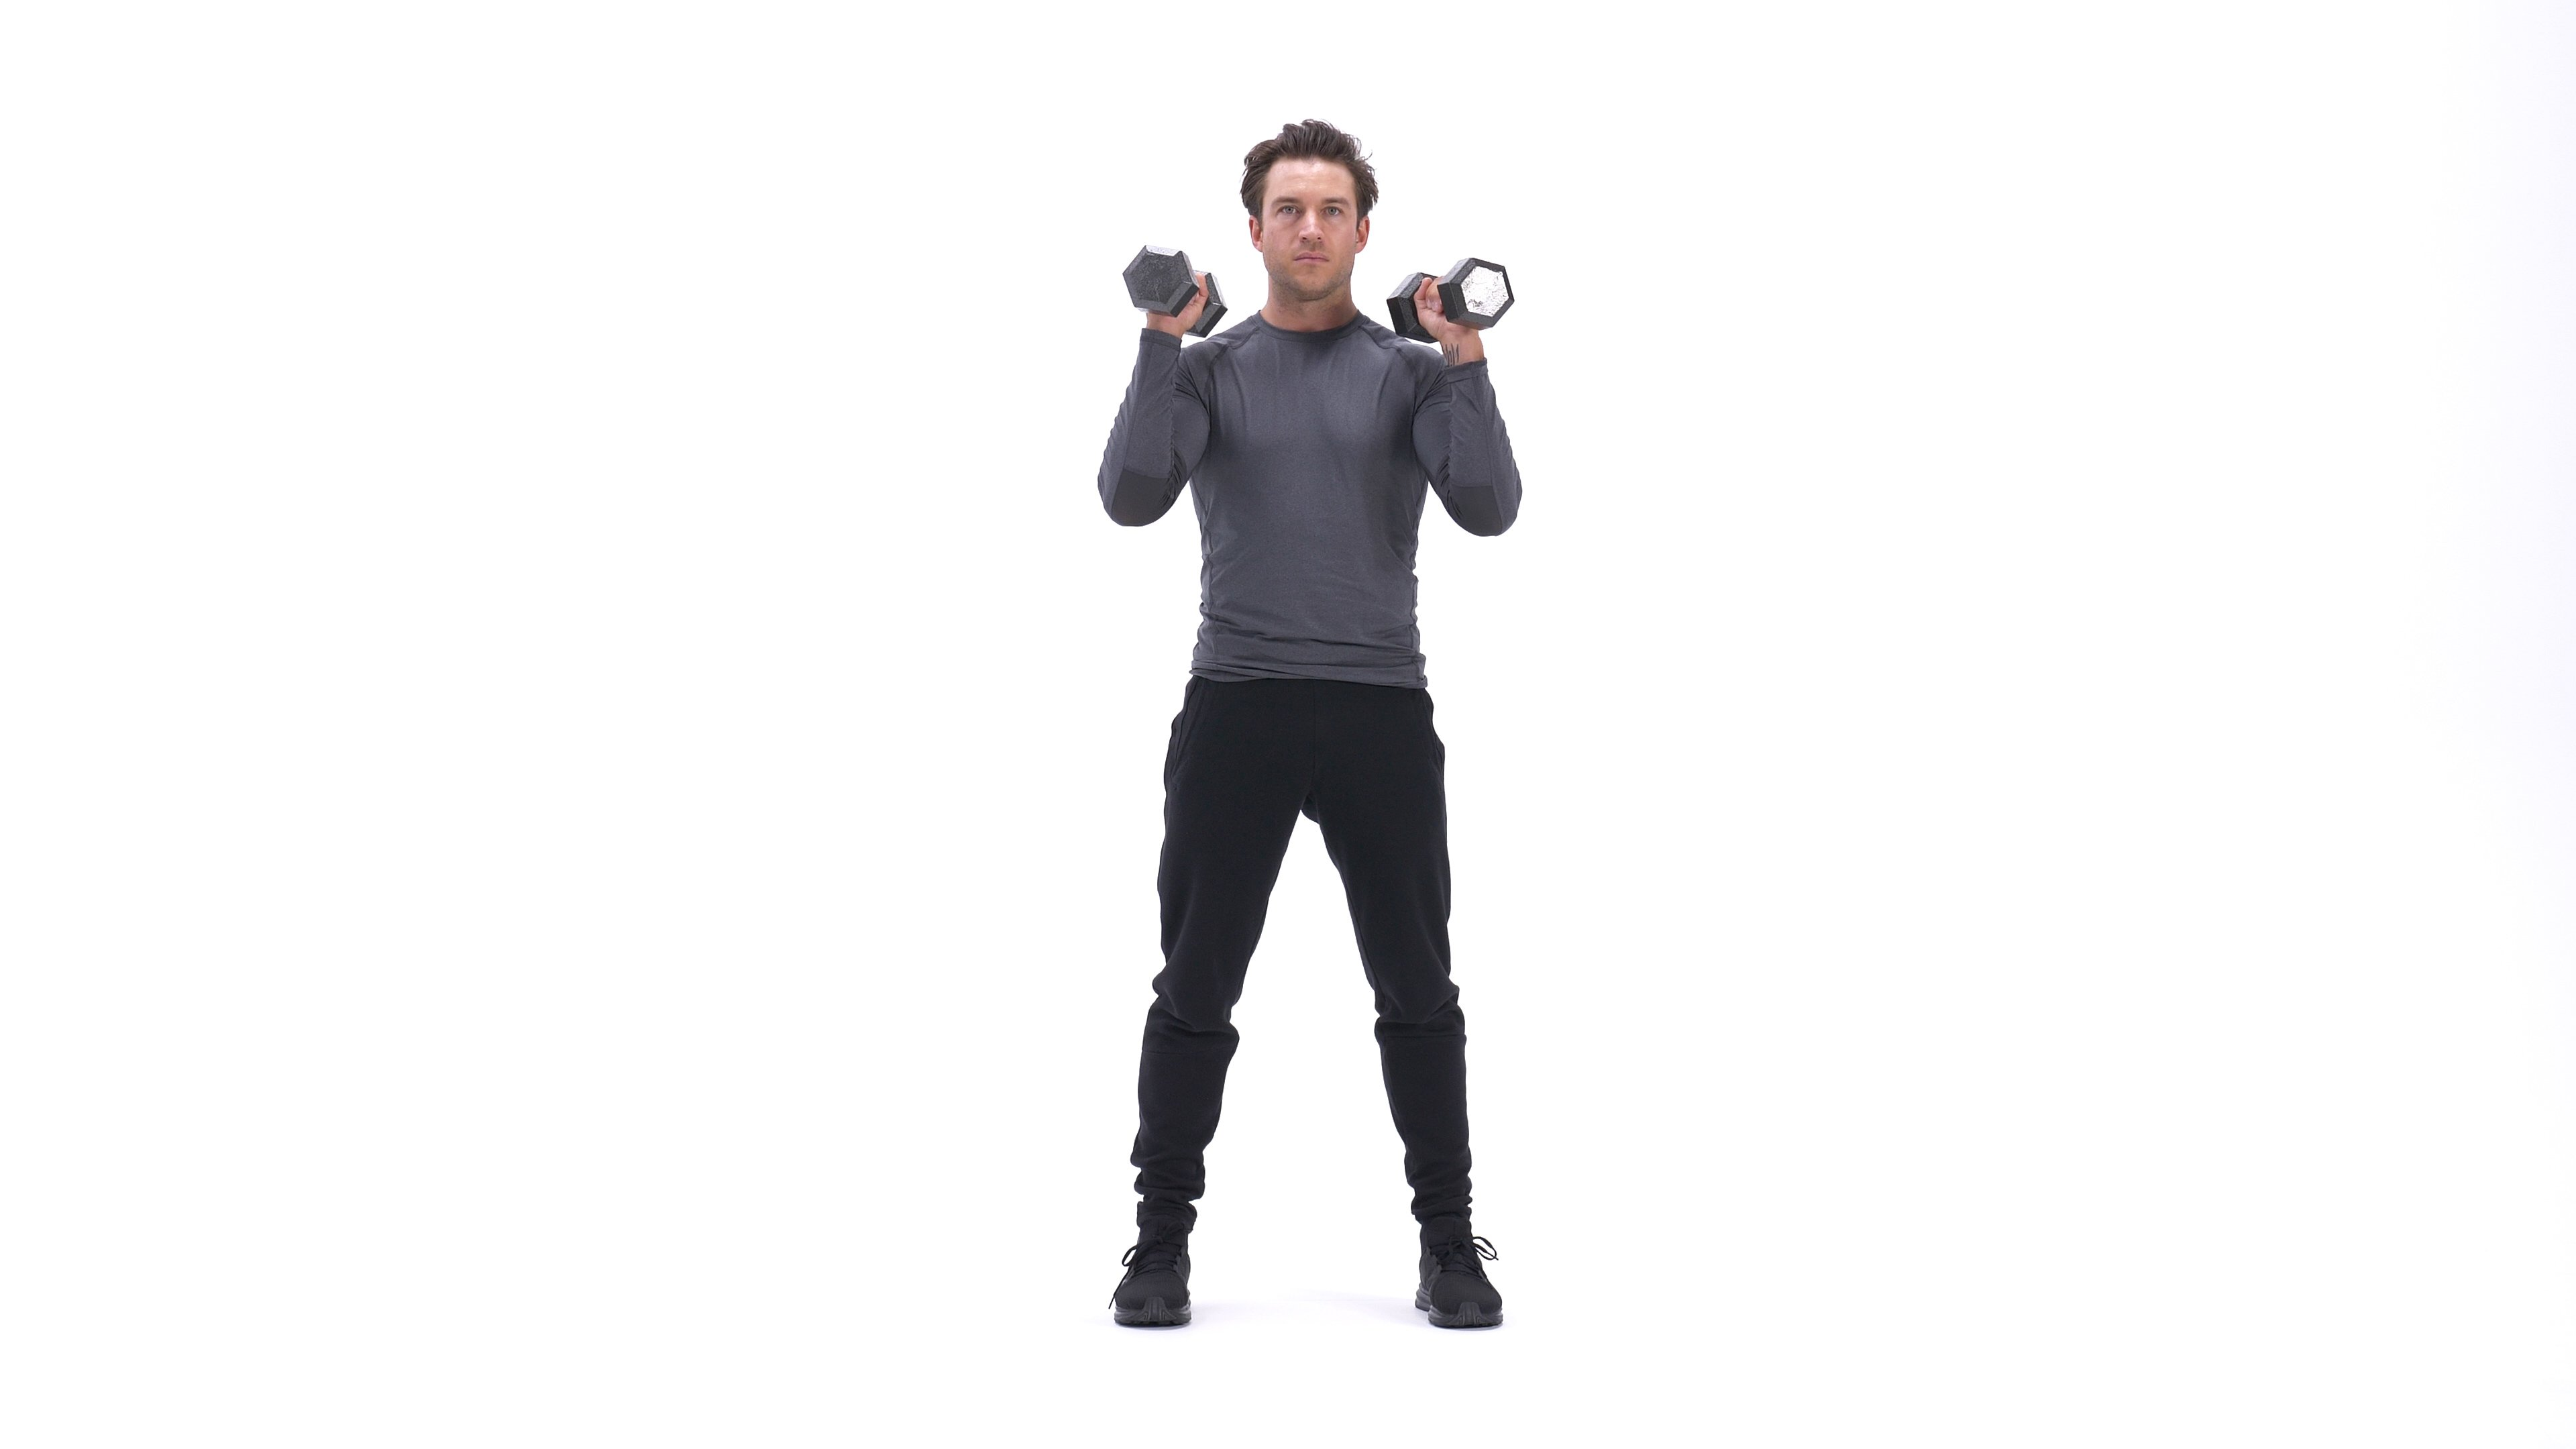 Dumbbell front squat image